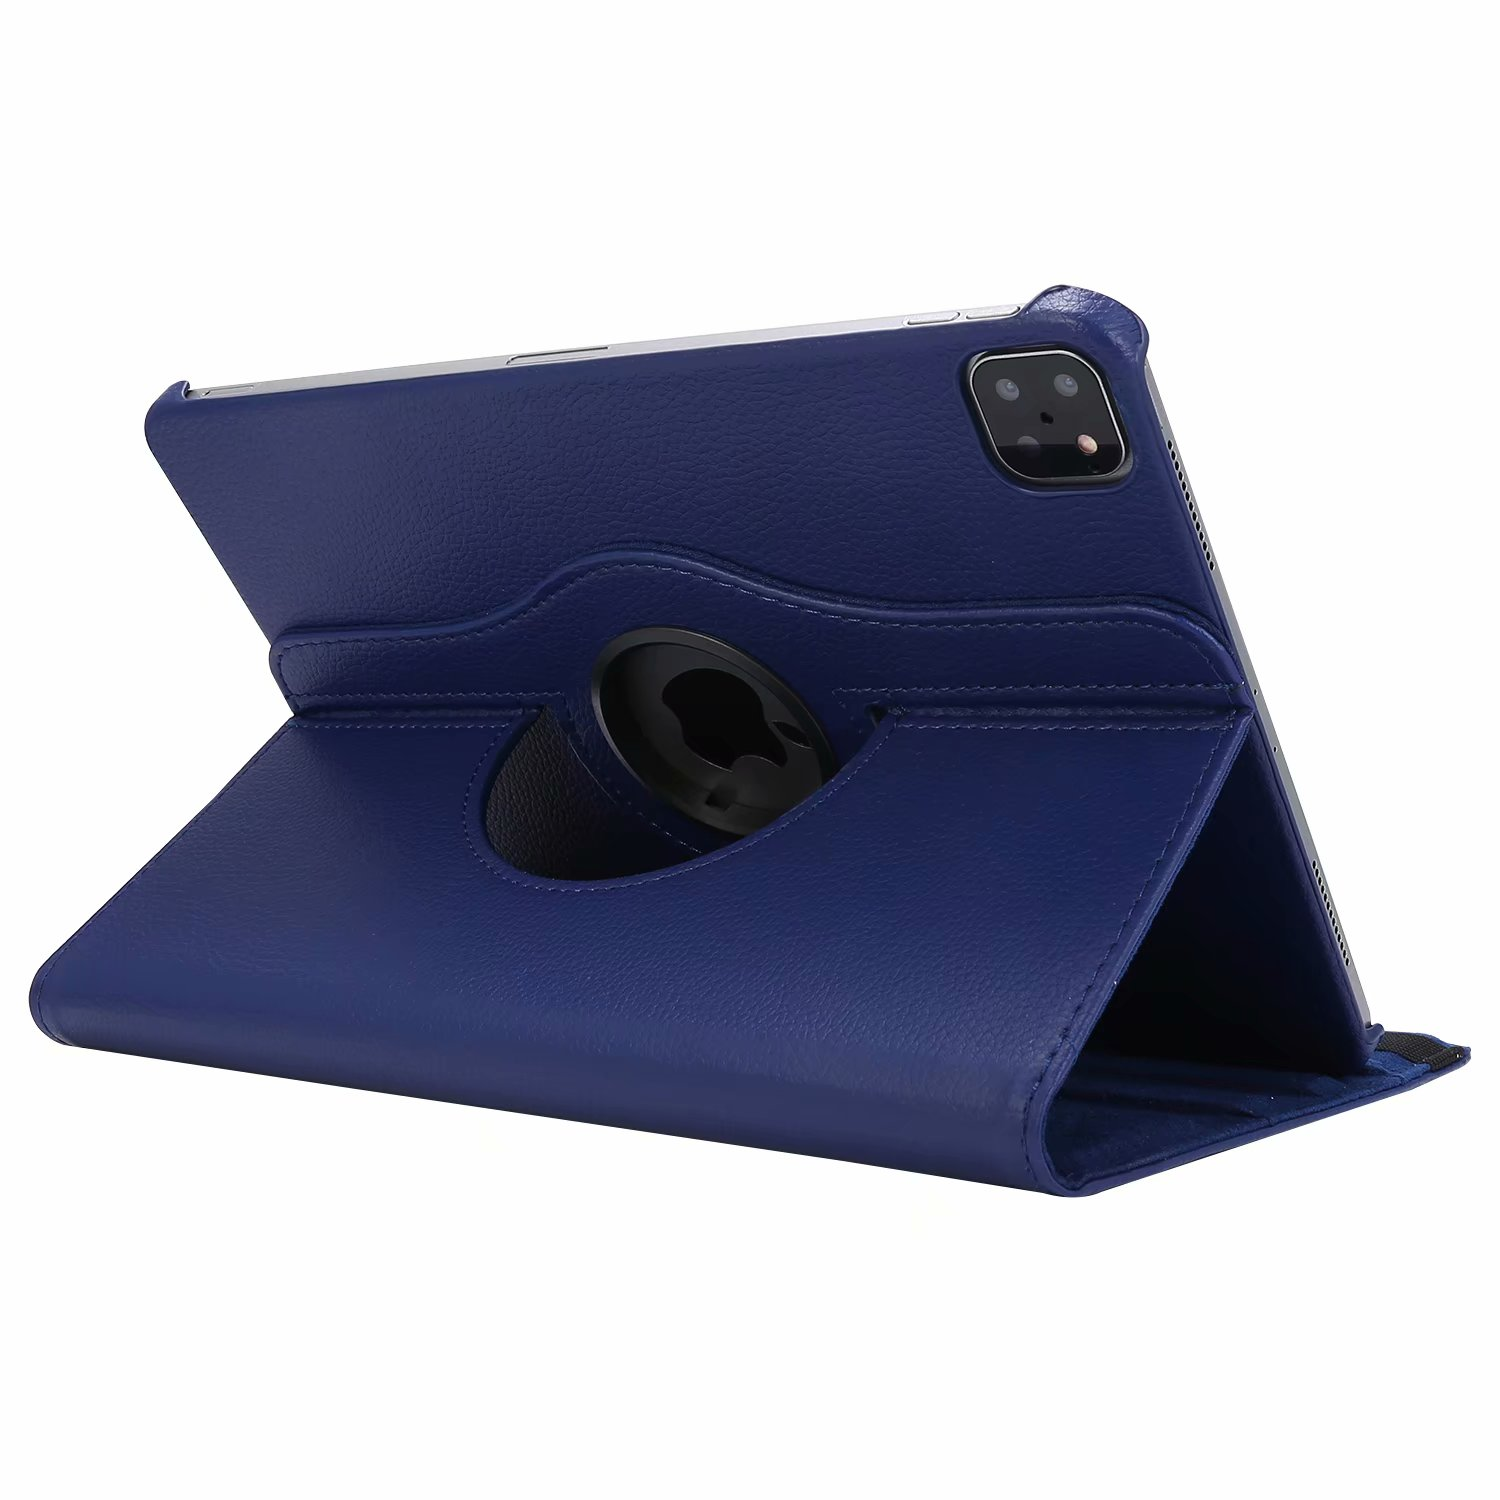 Navy Blue Navy Blue Case for iPad Pro 11 Cover 2021 2020 2018 A2228 A2068 A2230 A2013 A1934 A1980 360